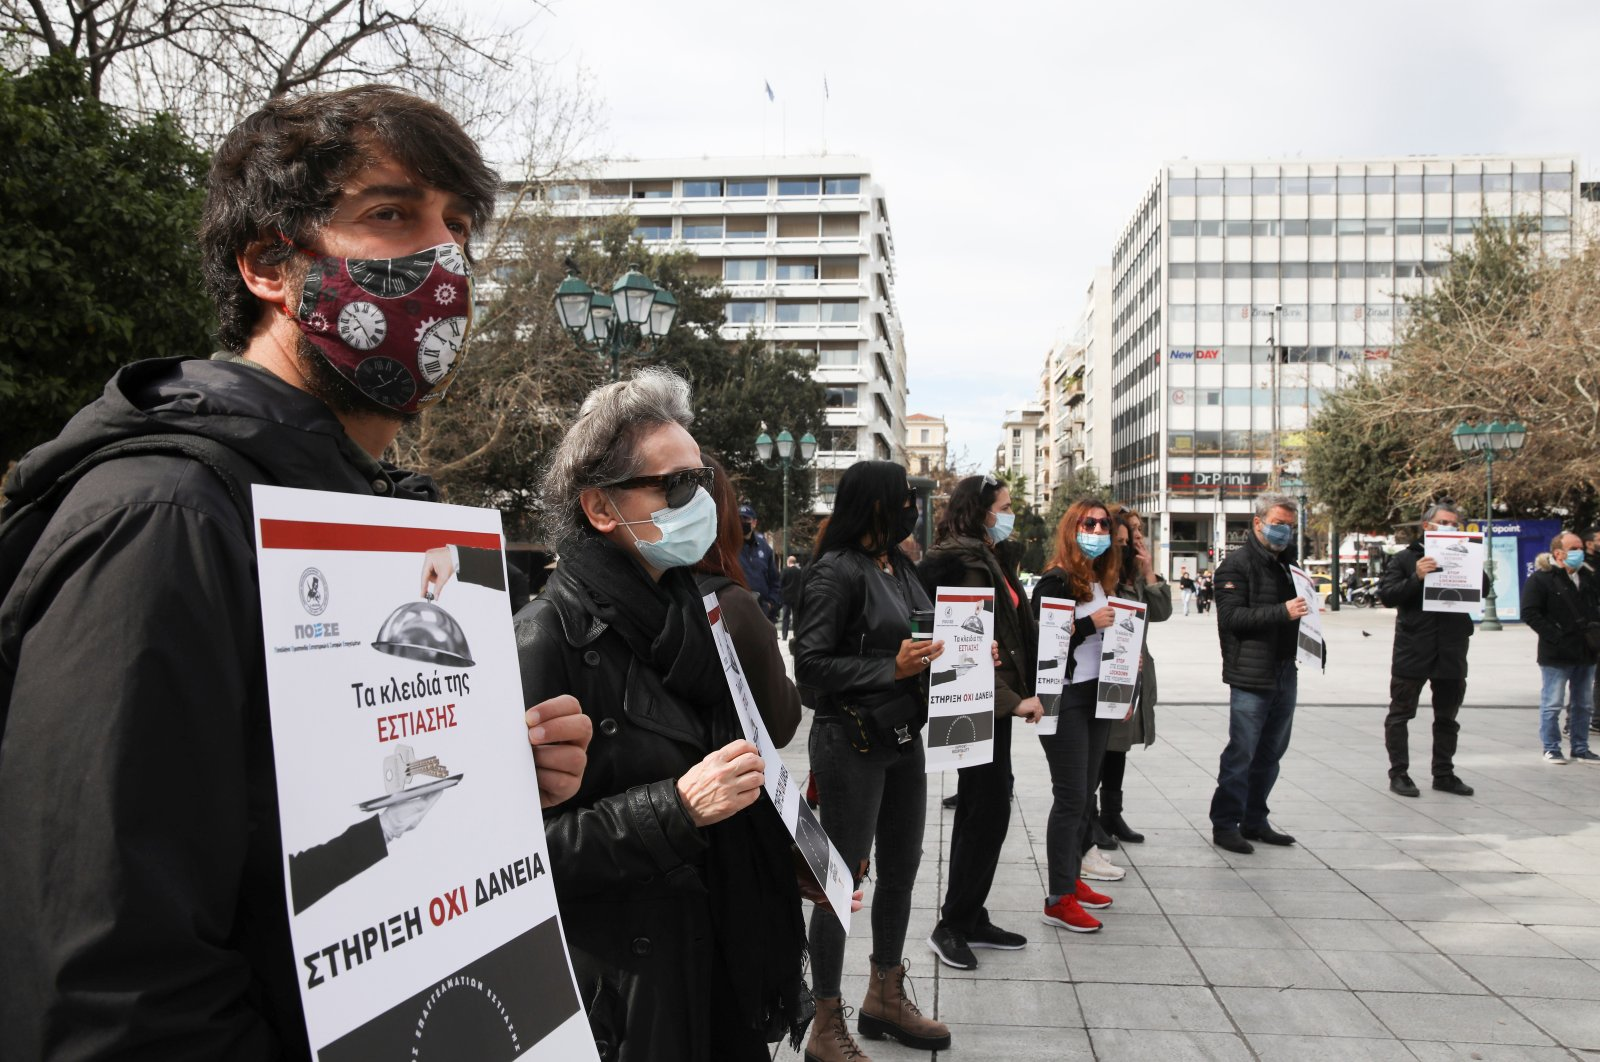 Restaurant and cafe owners hold placards during a protest over lockdown measures that have kept their businesses closed, amid the spread of the coronavirus disease (COVID-19), in Athens, Greece, Feb. 10, 2021. (Reuters Photo)